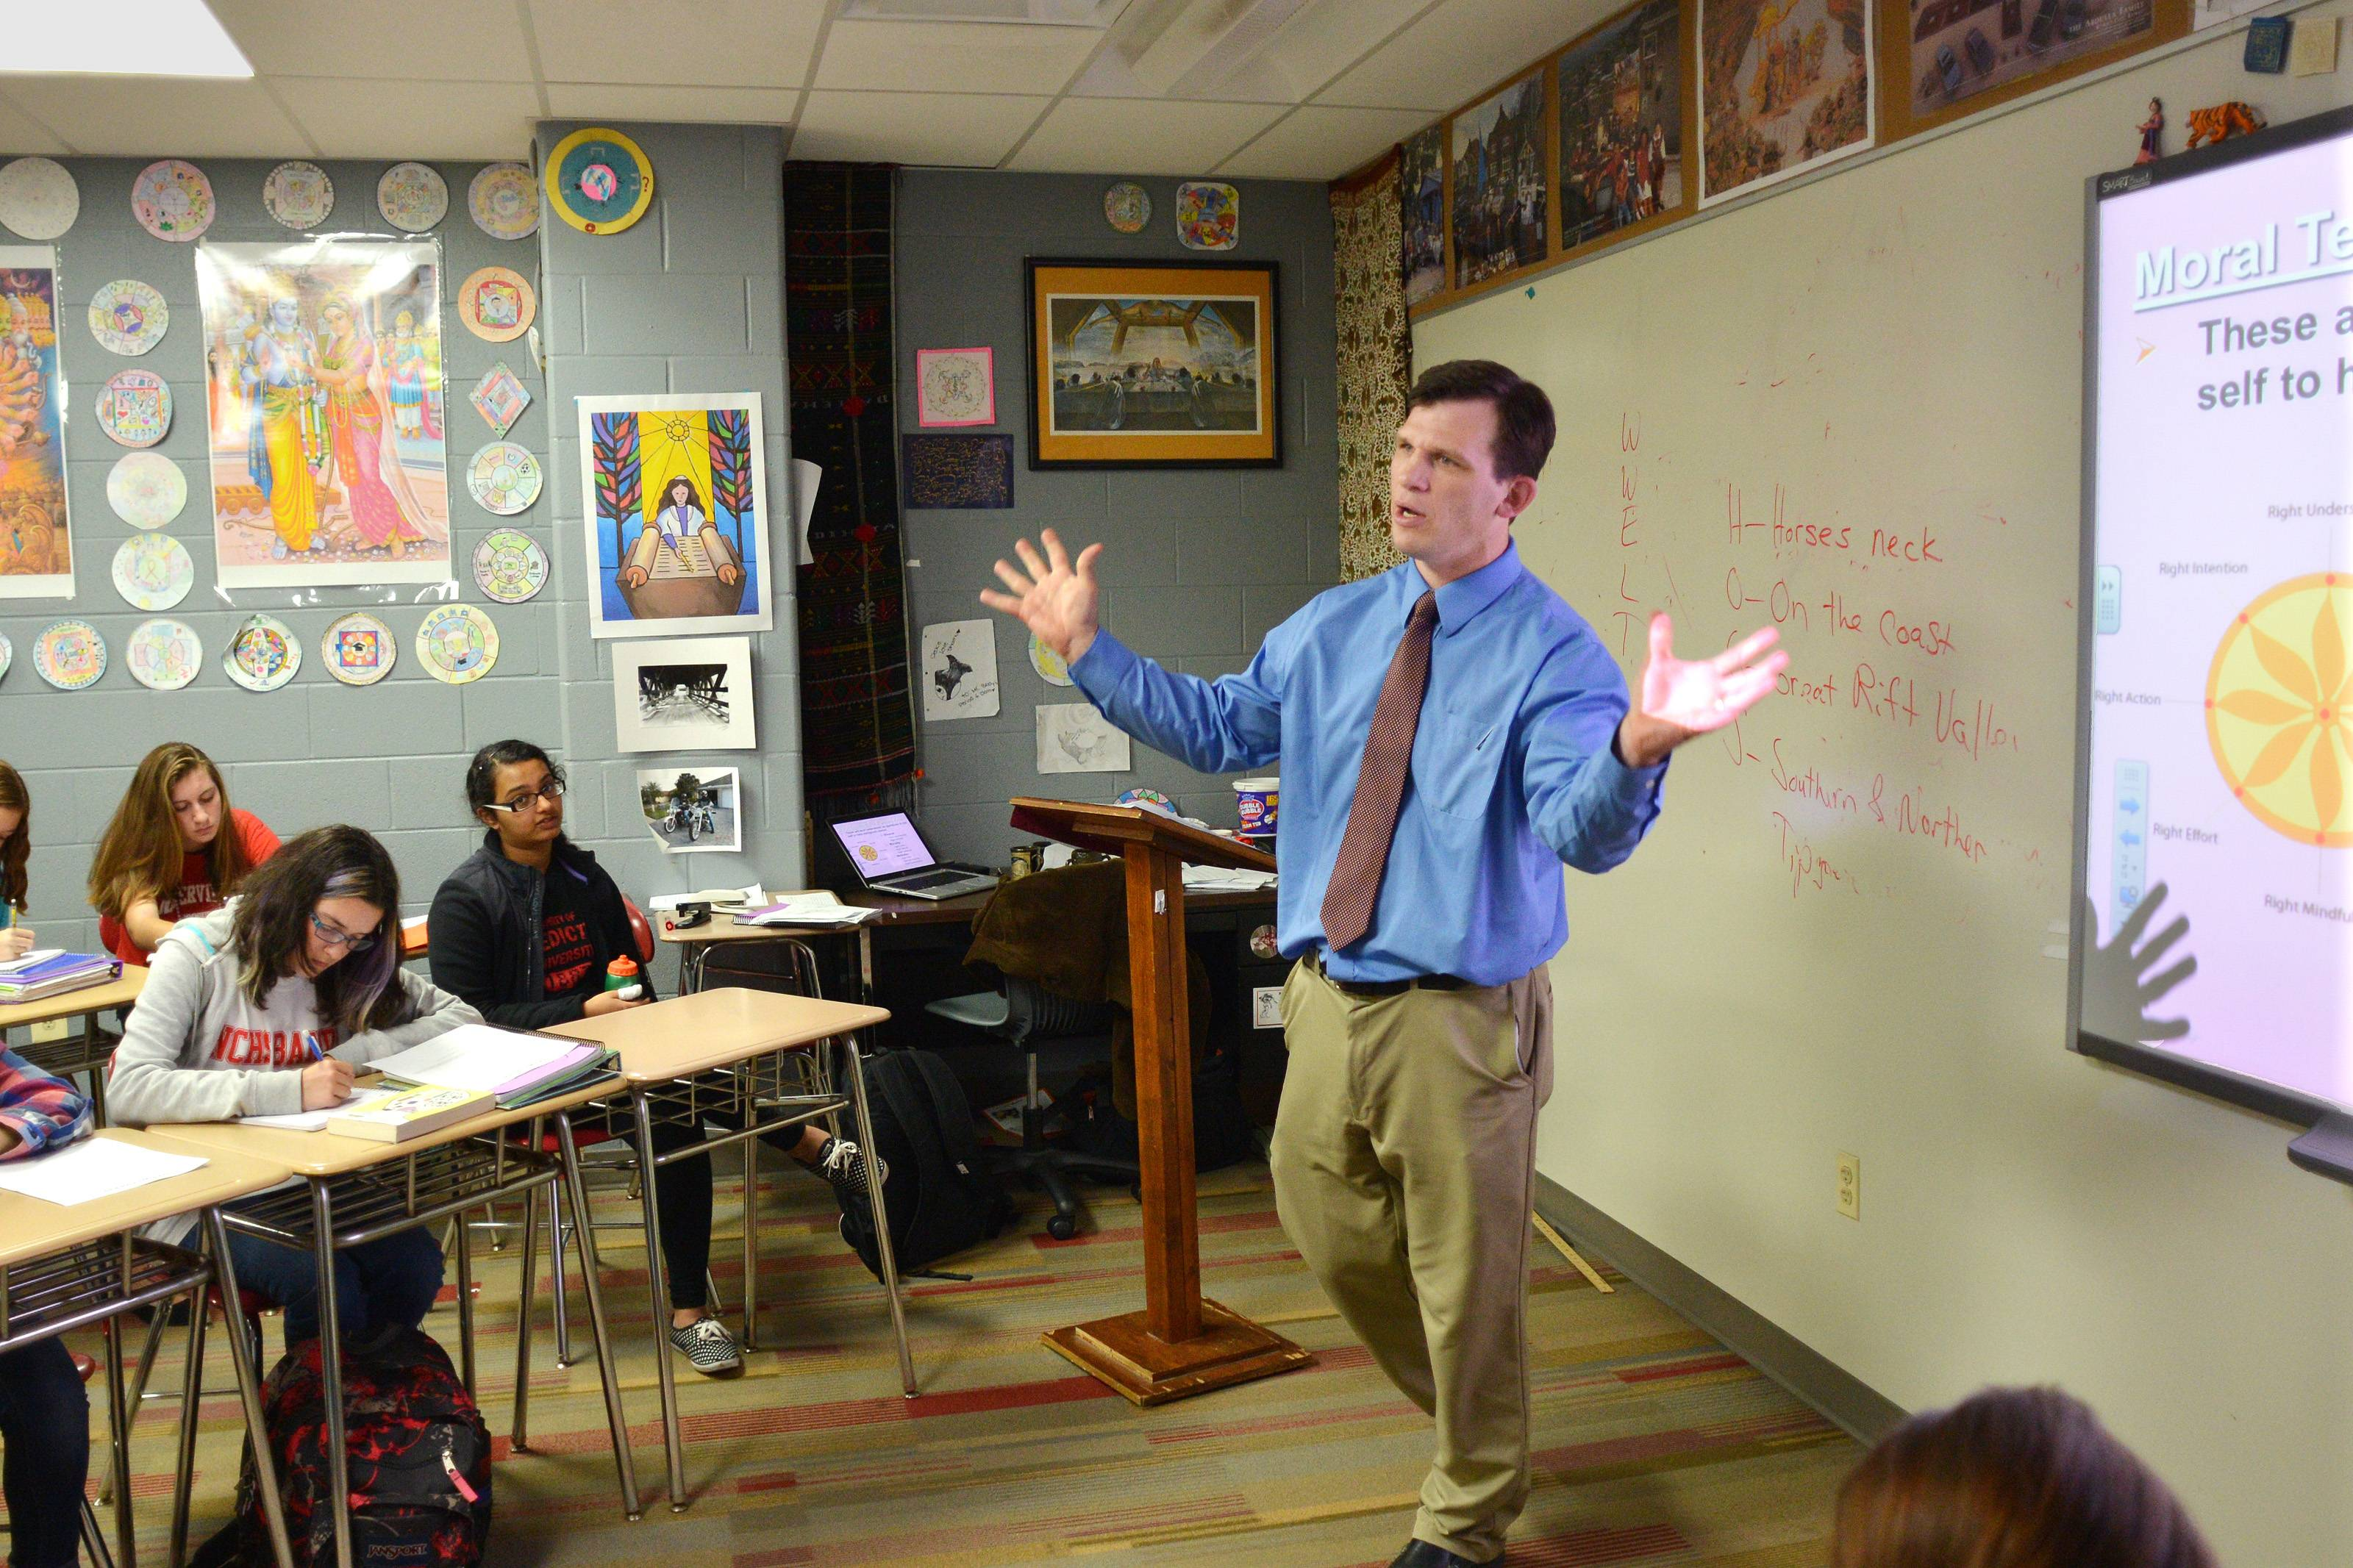 Why Naperville teacher wants 'Global Scholar' certificate